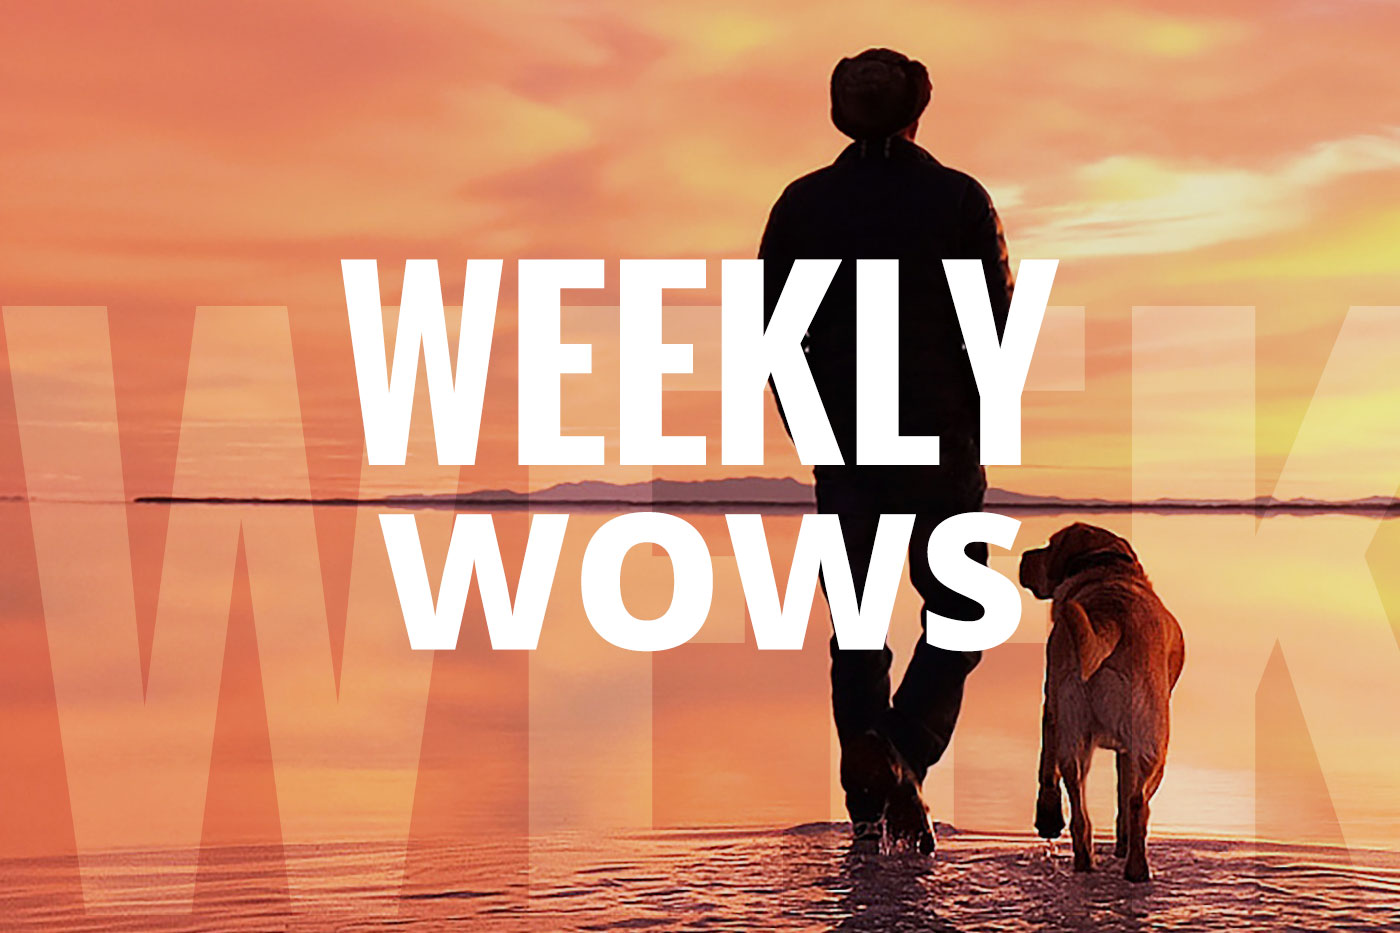 Weekly Wows